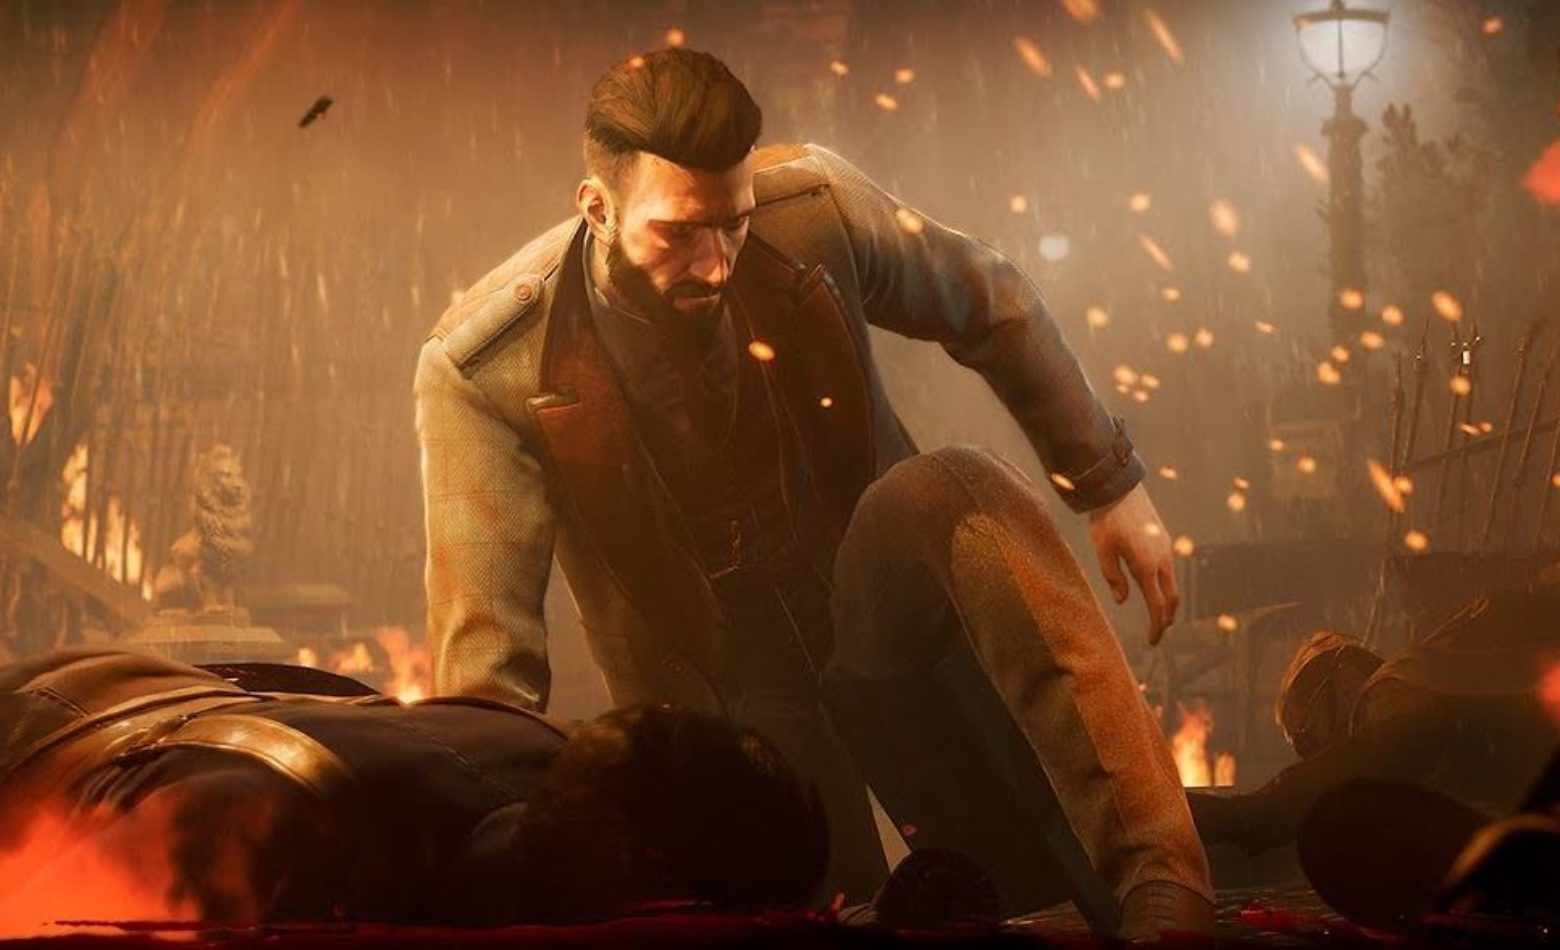 Vampyr: as incertezas de um vampiro iniciante [Gameplay]